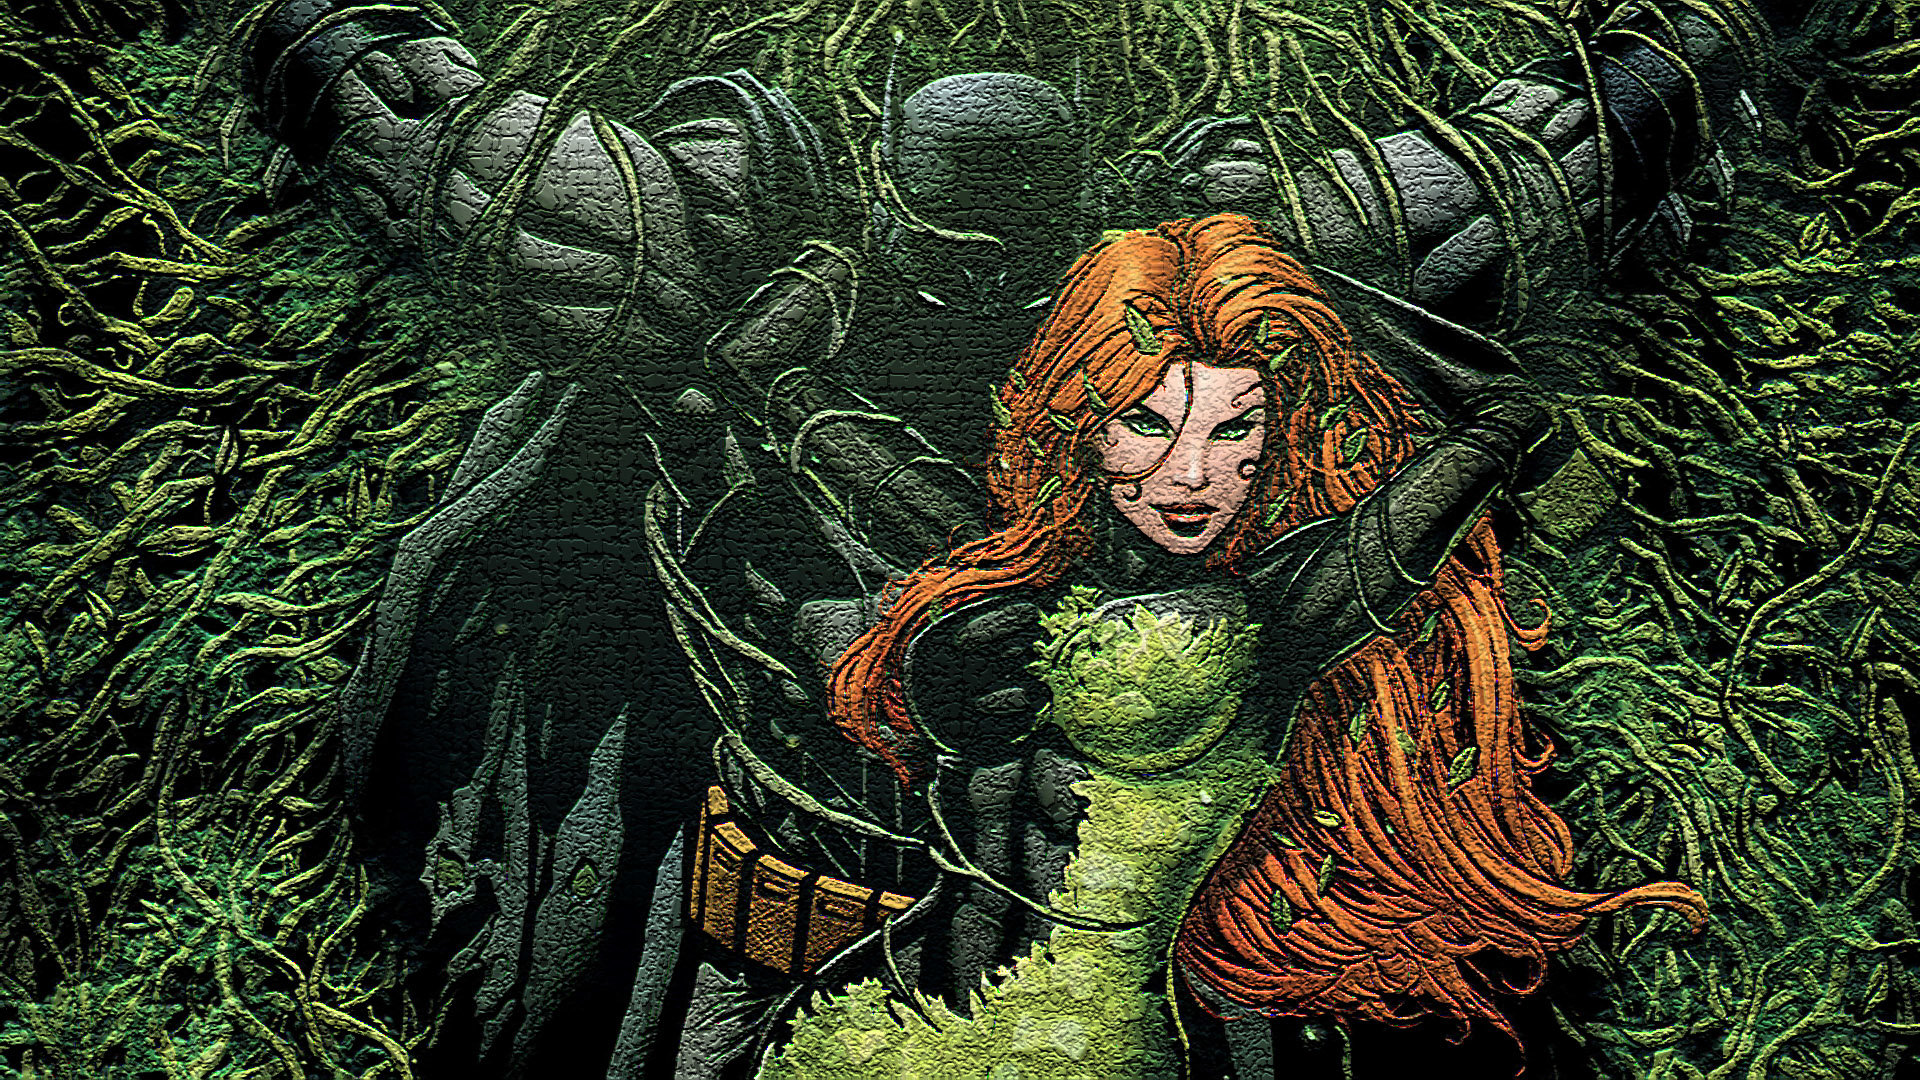 High resolution Poison Ivy full hd 1920x1080 wallpaper ID:430625 for PC